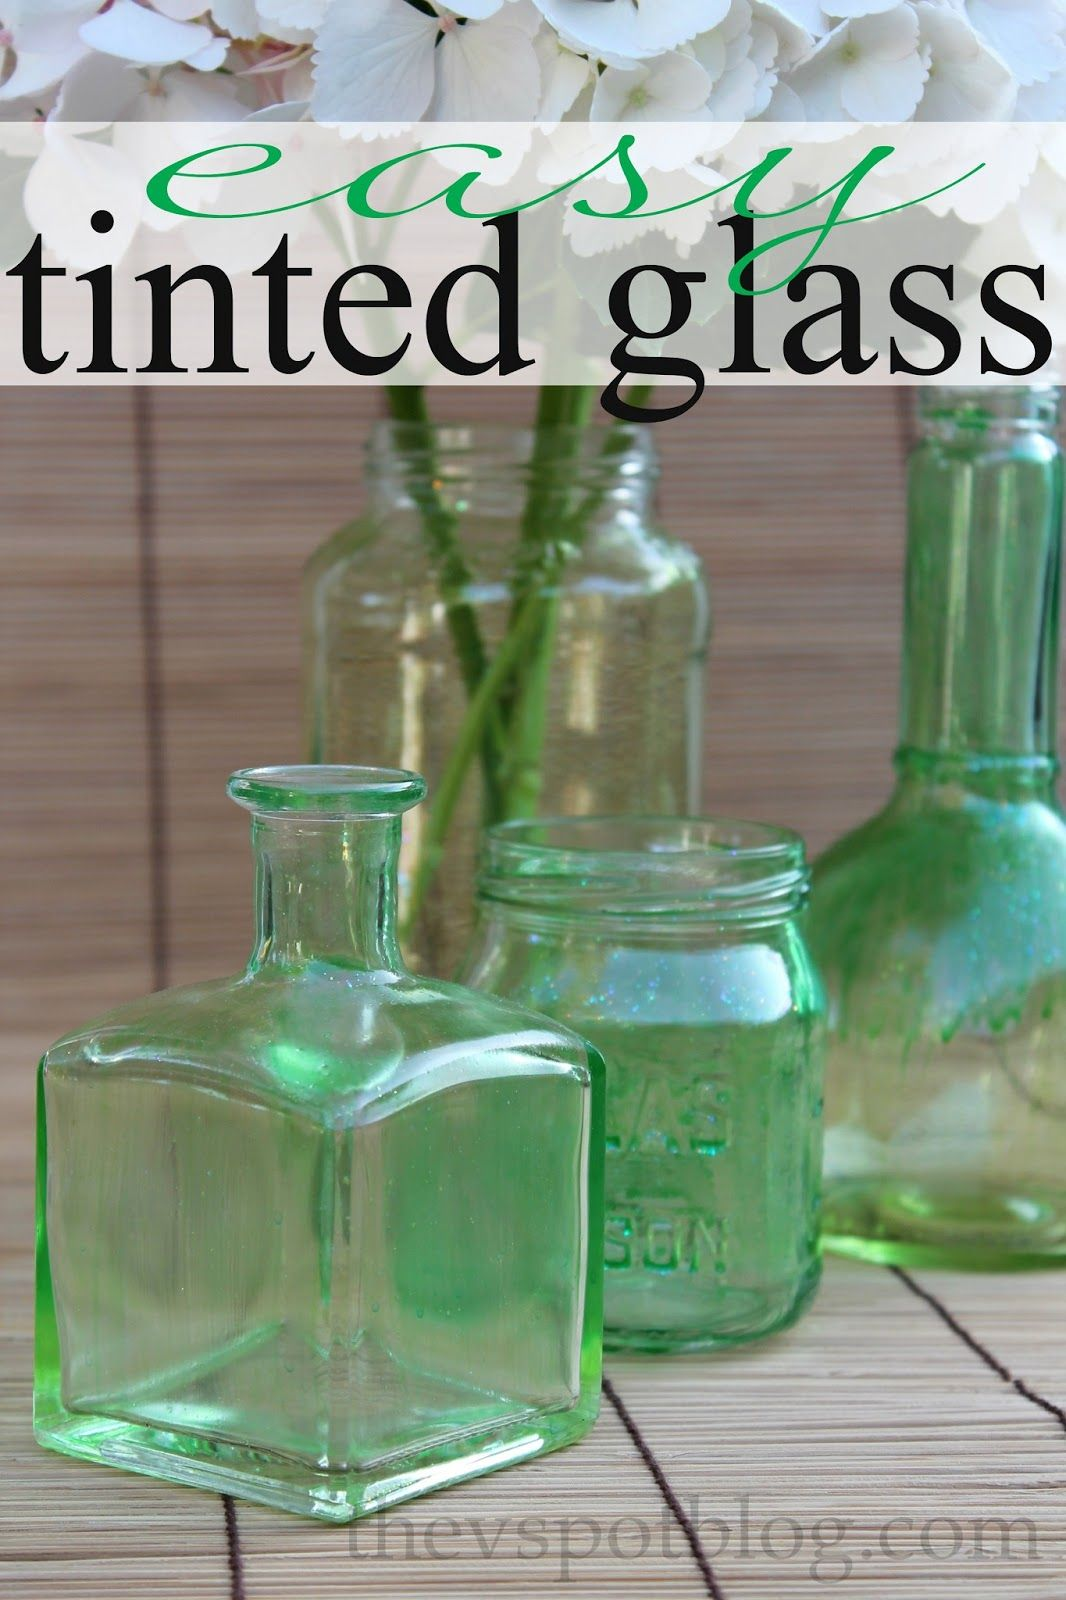 Uncategorized Tinted Jars an easy upcycle project tinted glass bottles and jars bottle jars